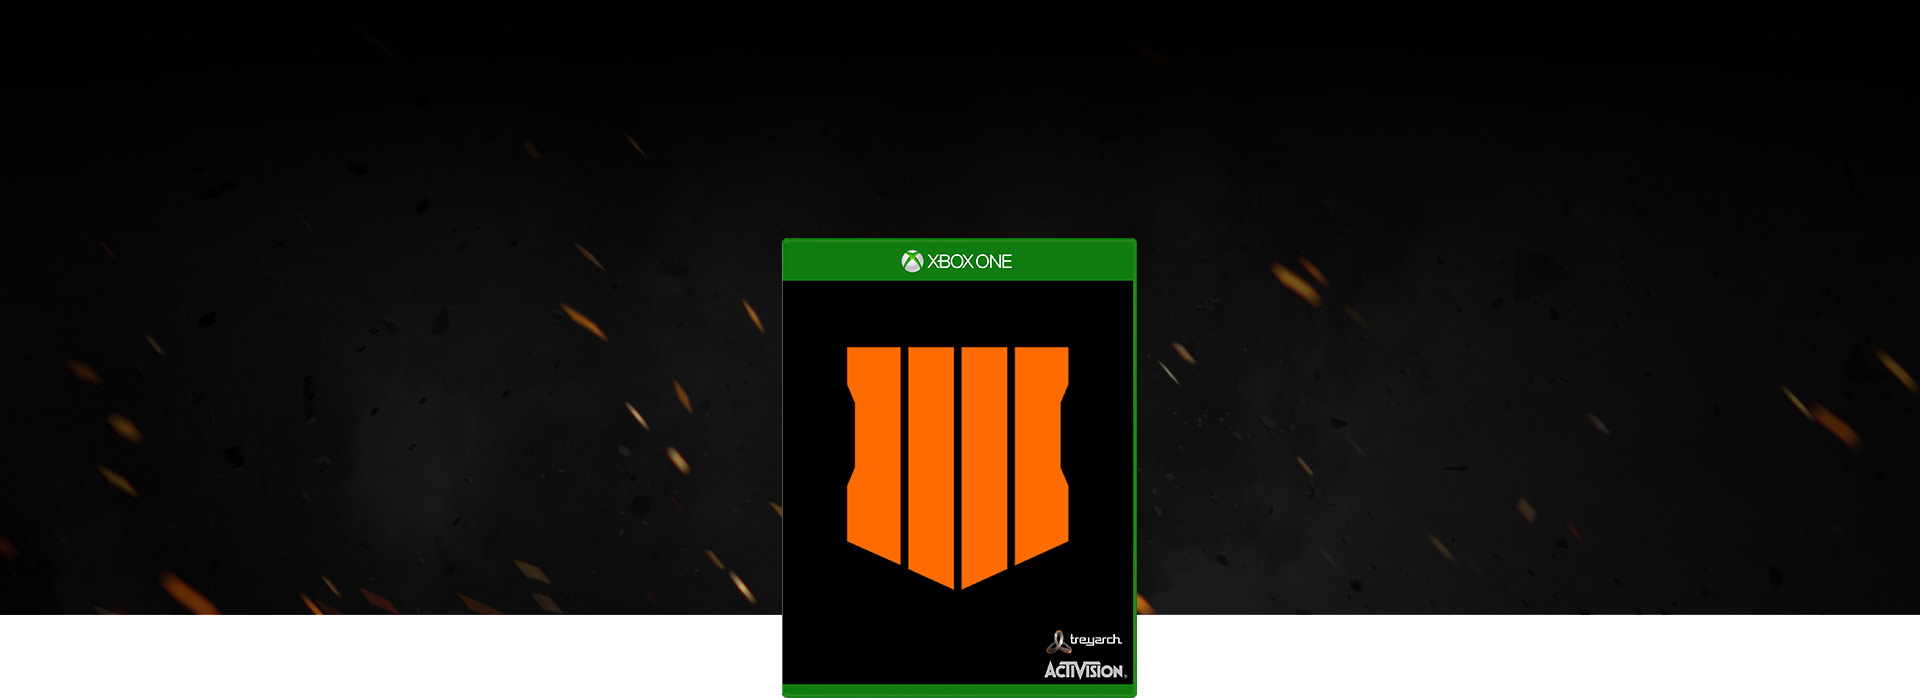 Call of Duty: Black Ops 4 boxshot, background of smoke and embers